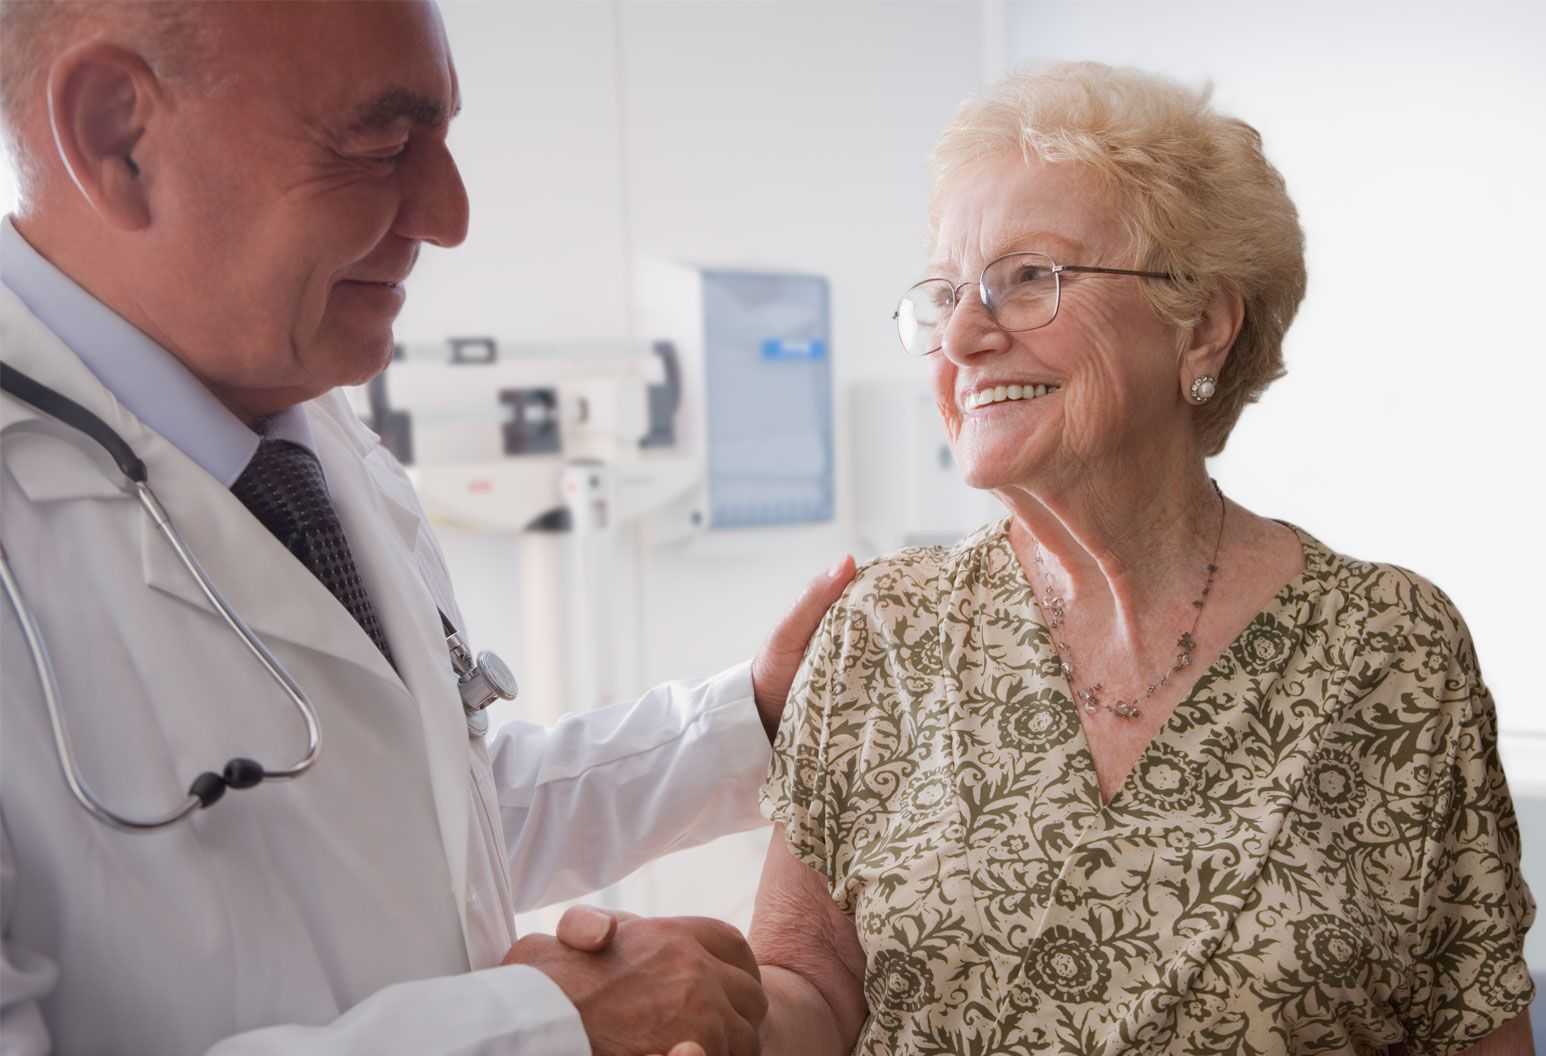 Doctor shakes hand of senior female patient